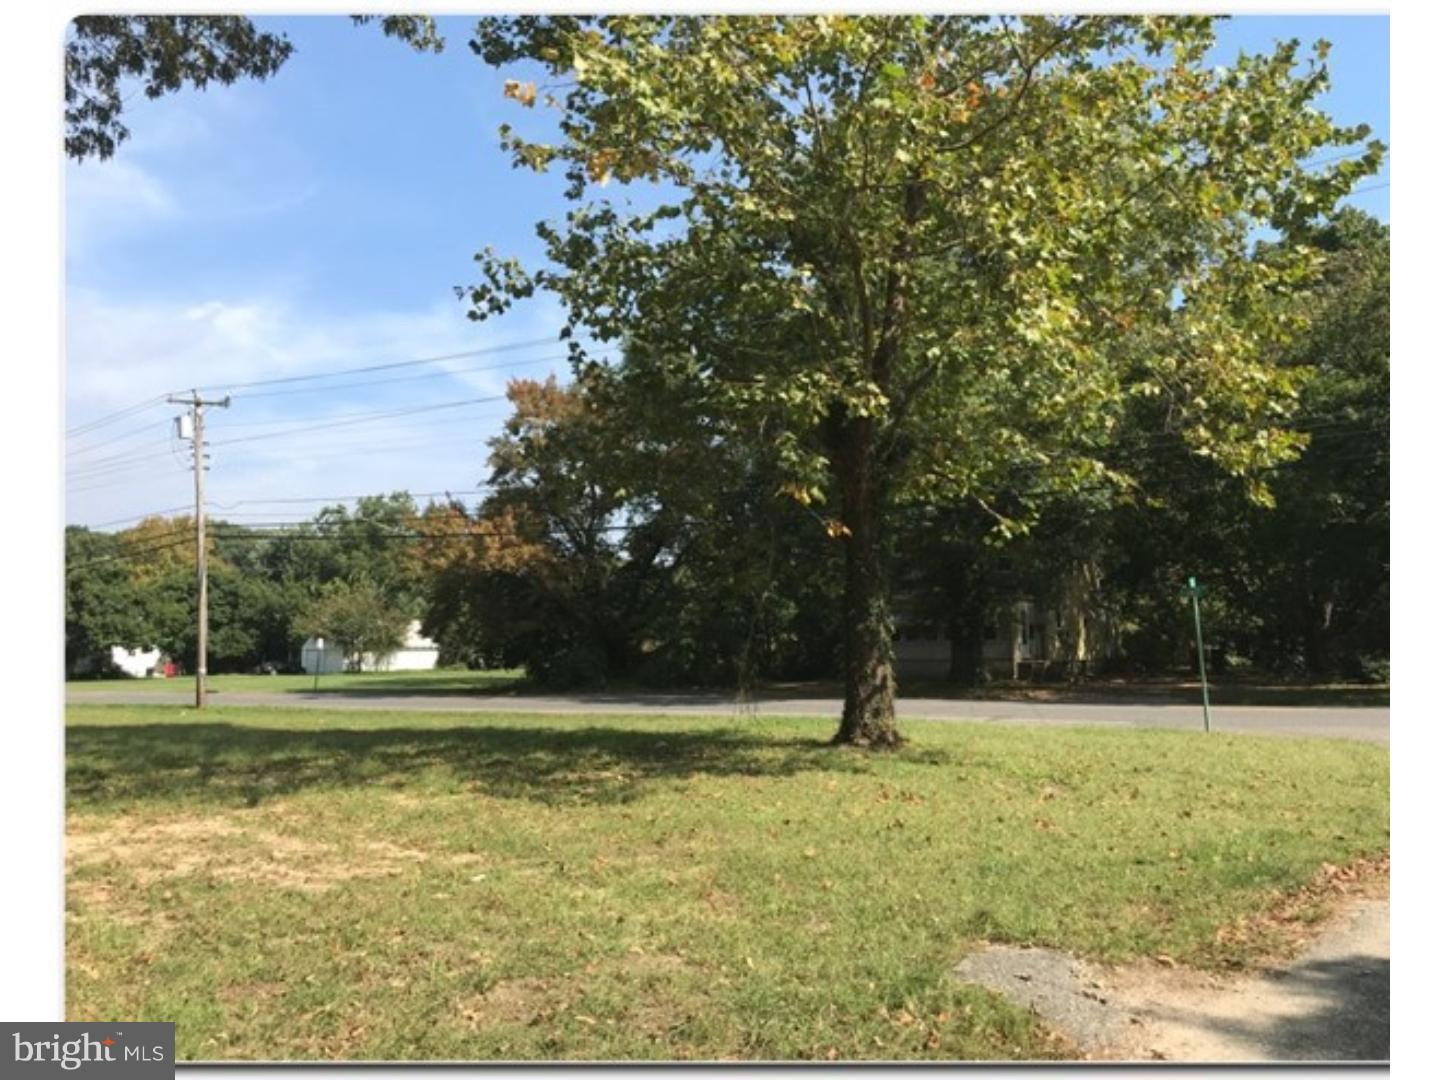 Land for Rent at 73 CONE Street Bridgeton, New Jersey 08302 United States